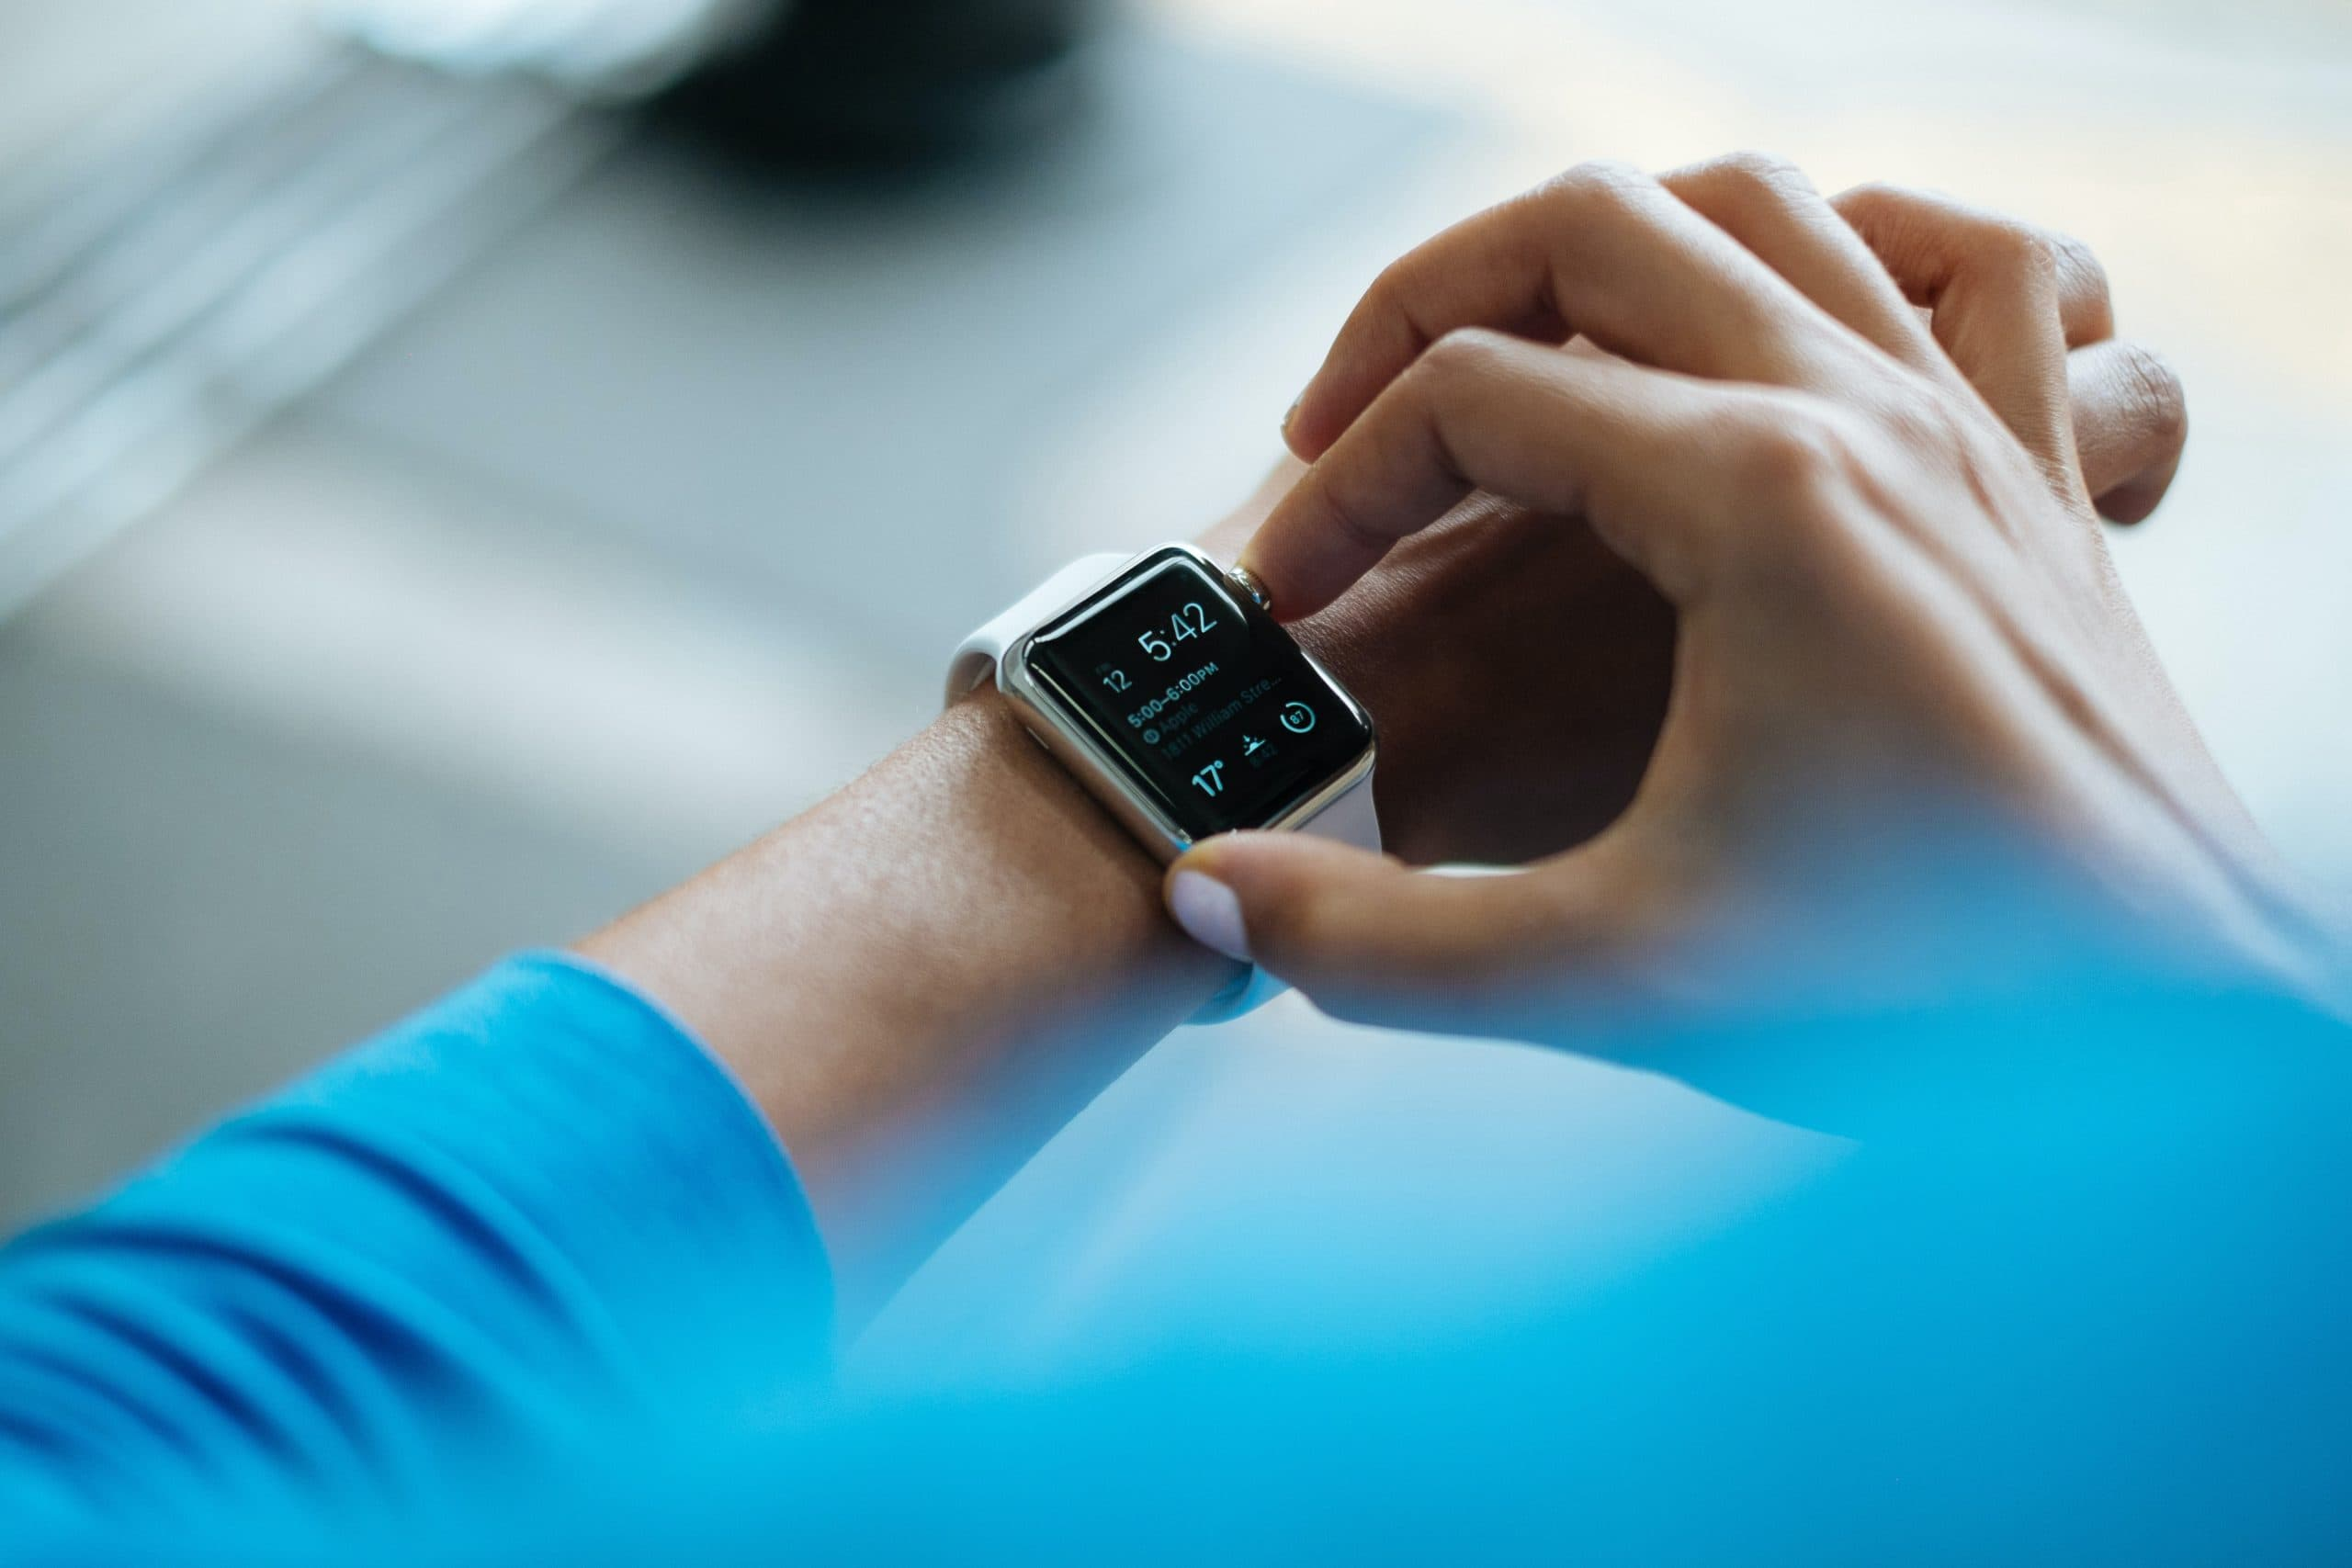 How to set up your new Apple Watch the right way